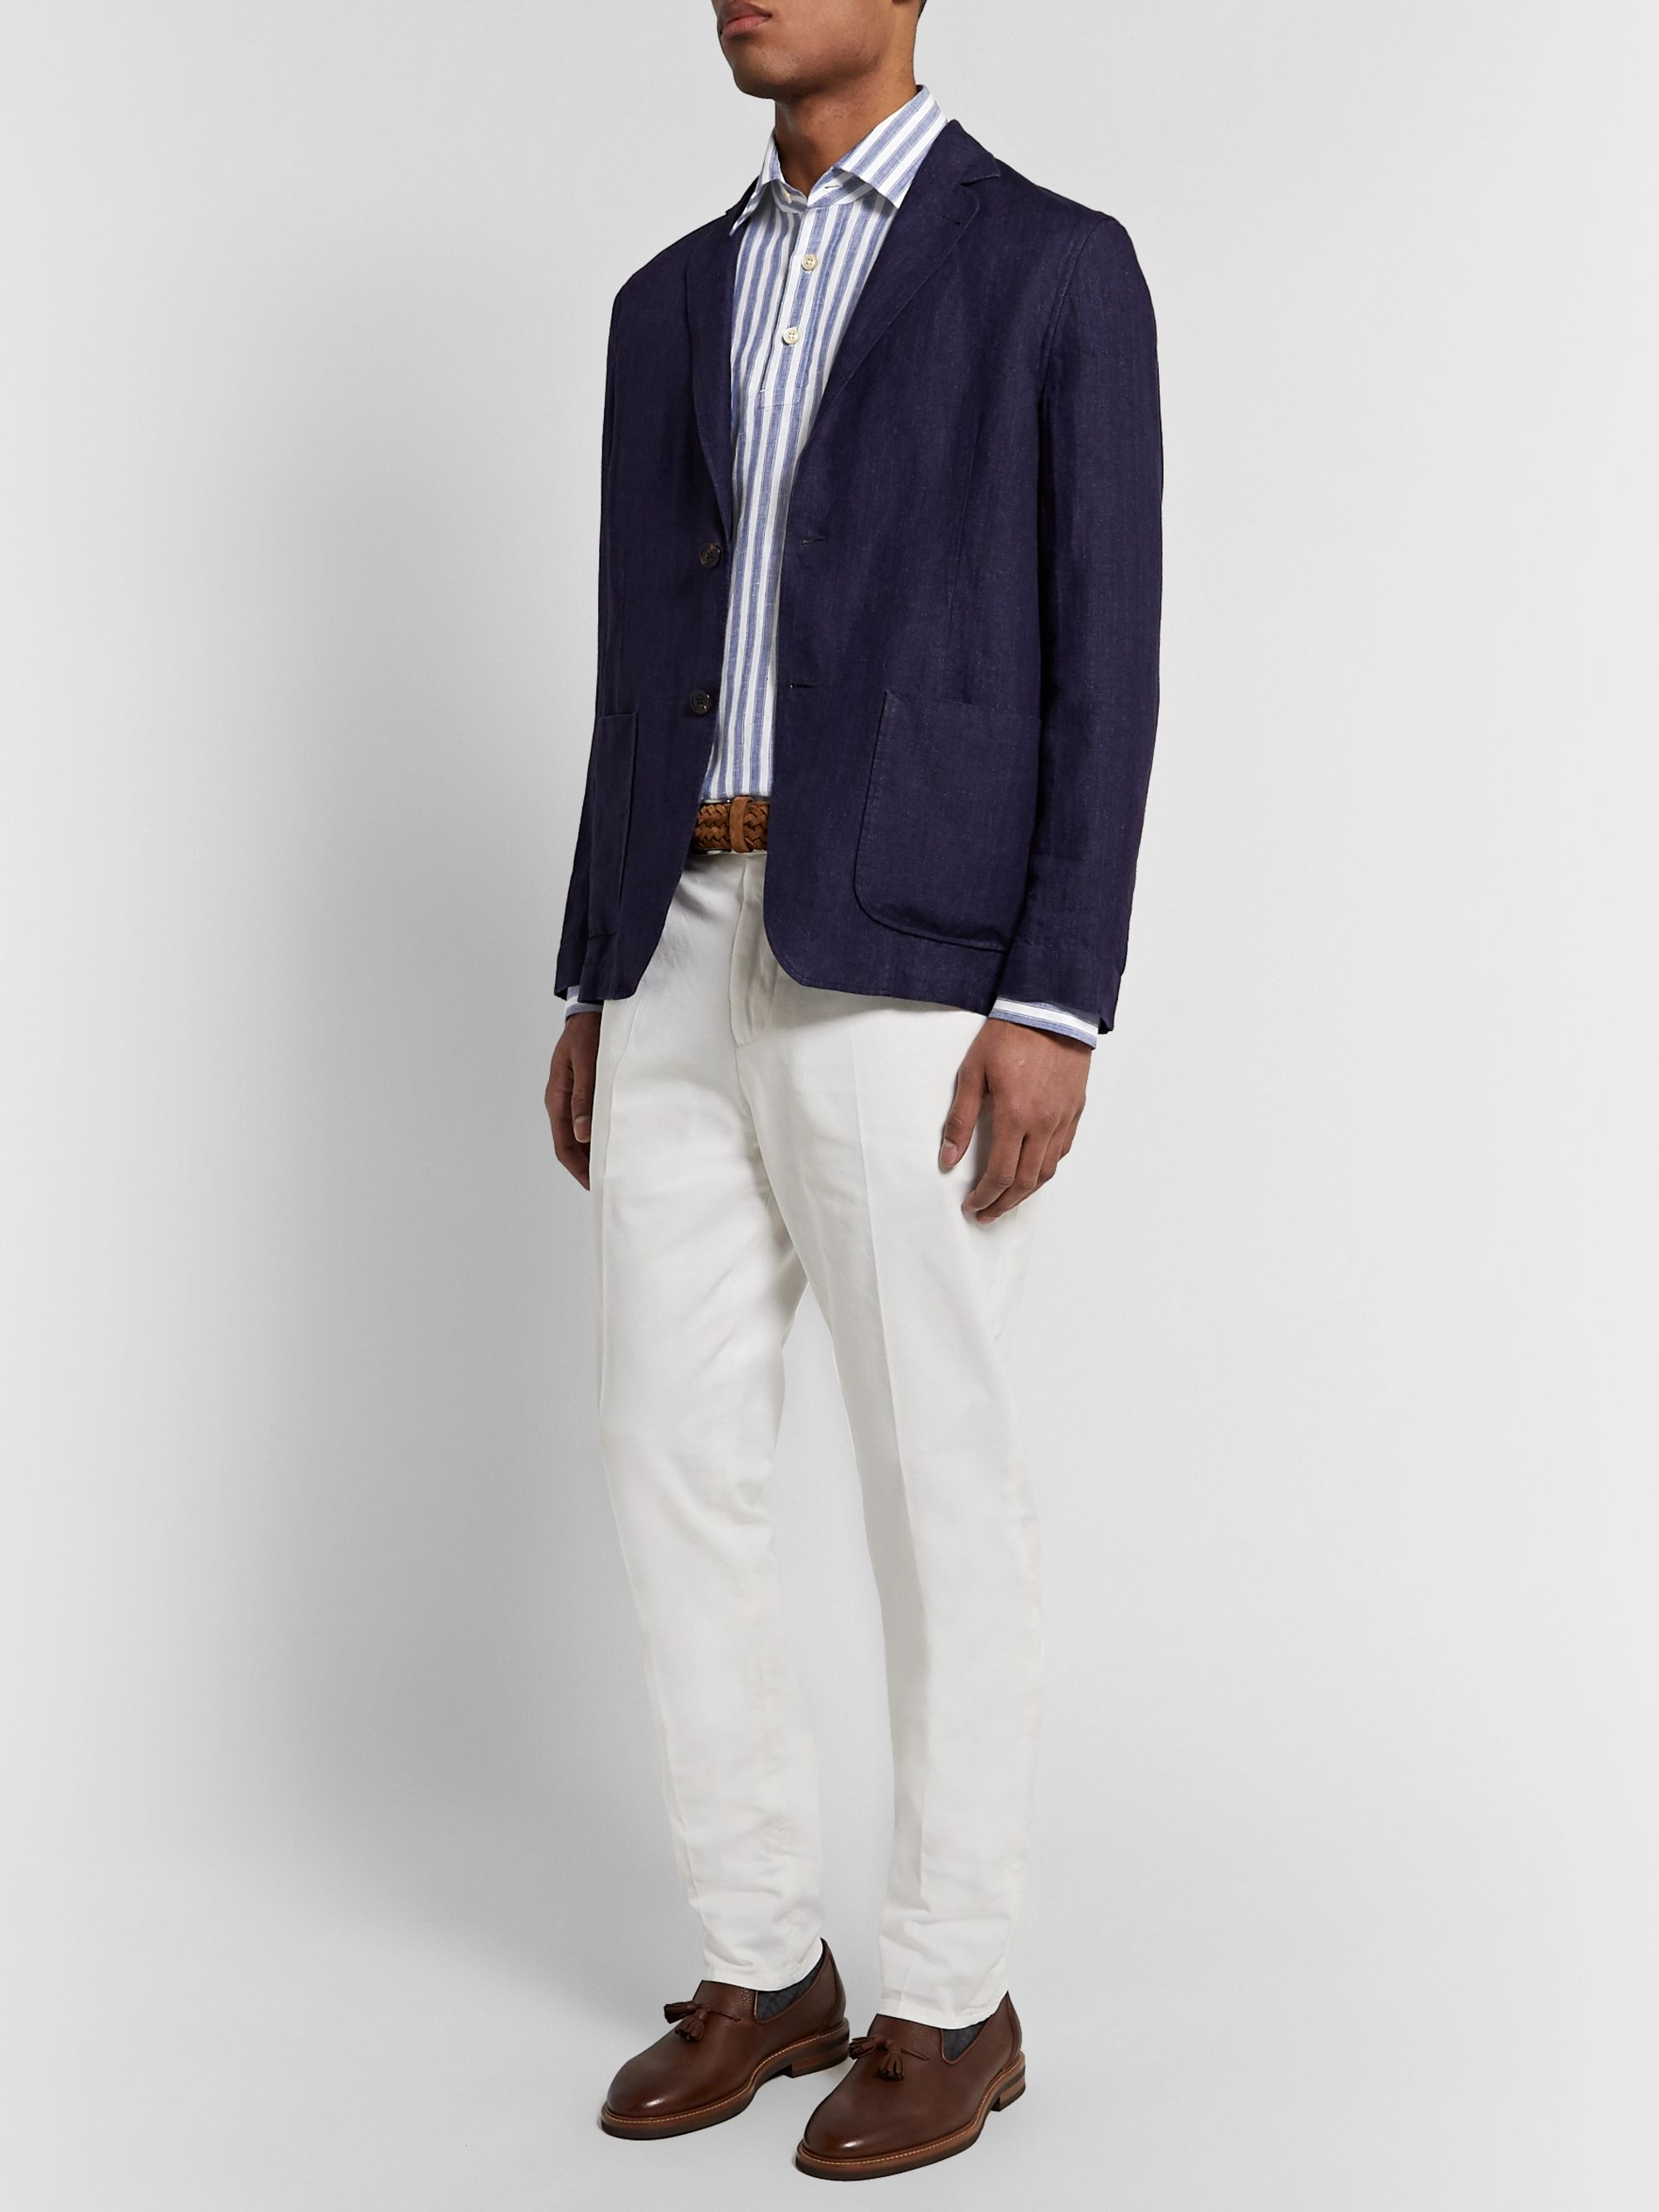 KITON Striped Linen Half-Placket Shirt